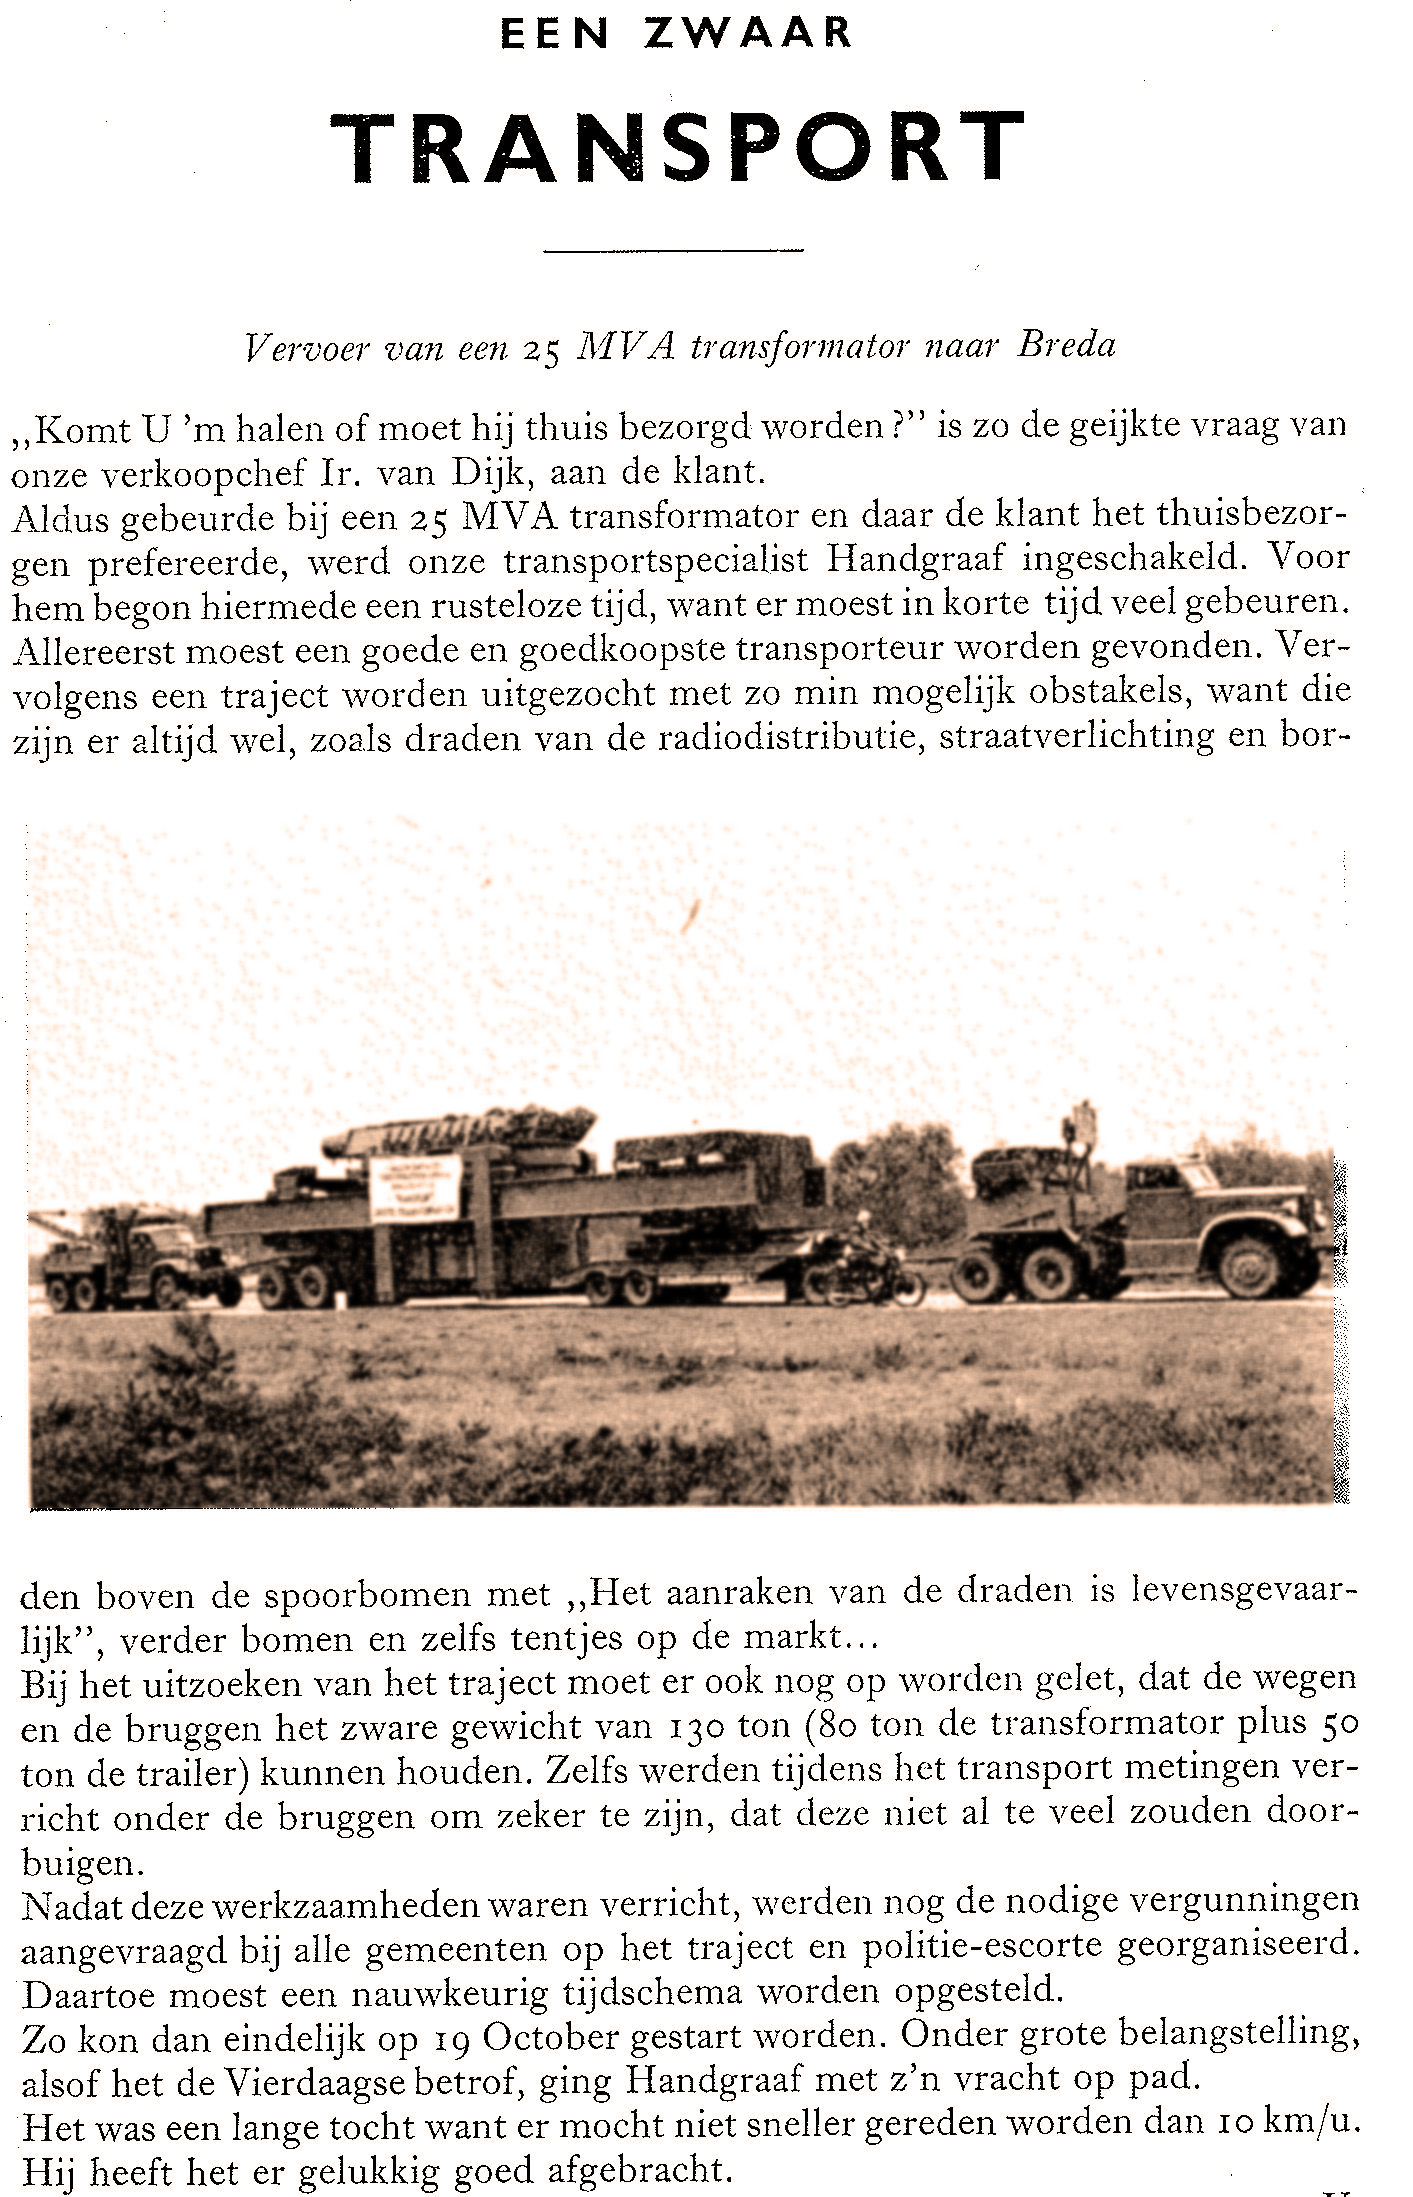 Zwaar transport 1954